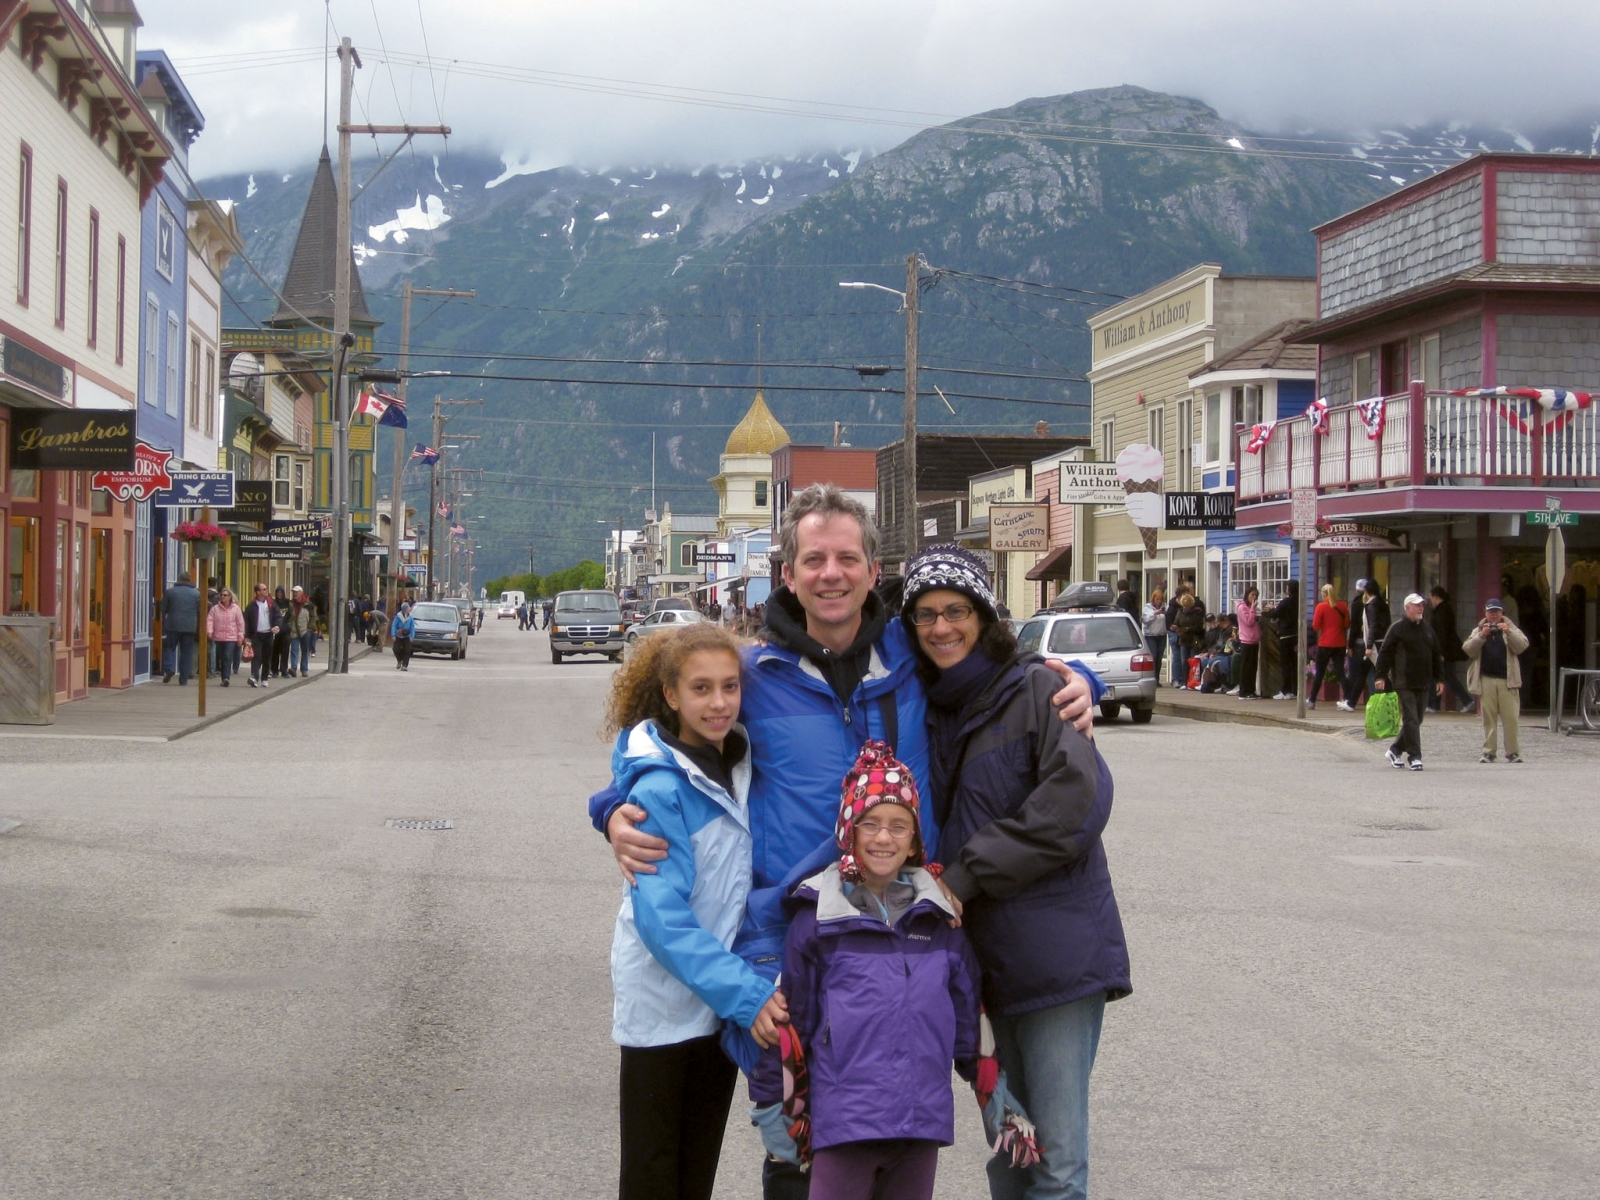 After the diagnosis,  Sorkin and his family-Lisa; Emma, 11; and Claire, 9-decided to travel. Here they are  in Skagway, Alaska. Photo credit: Daniel Arnold